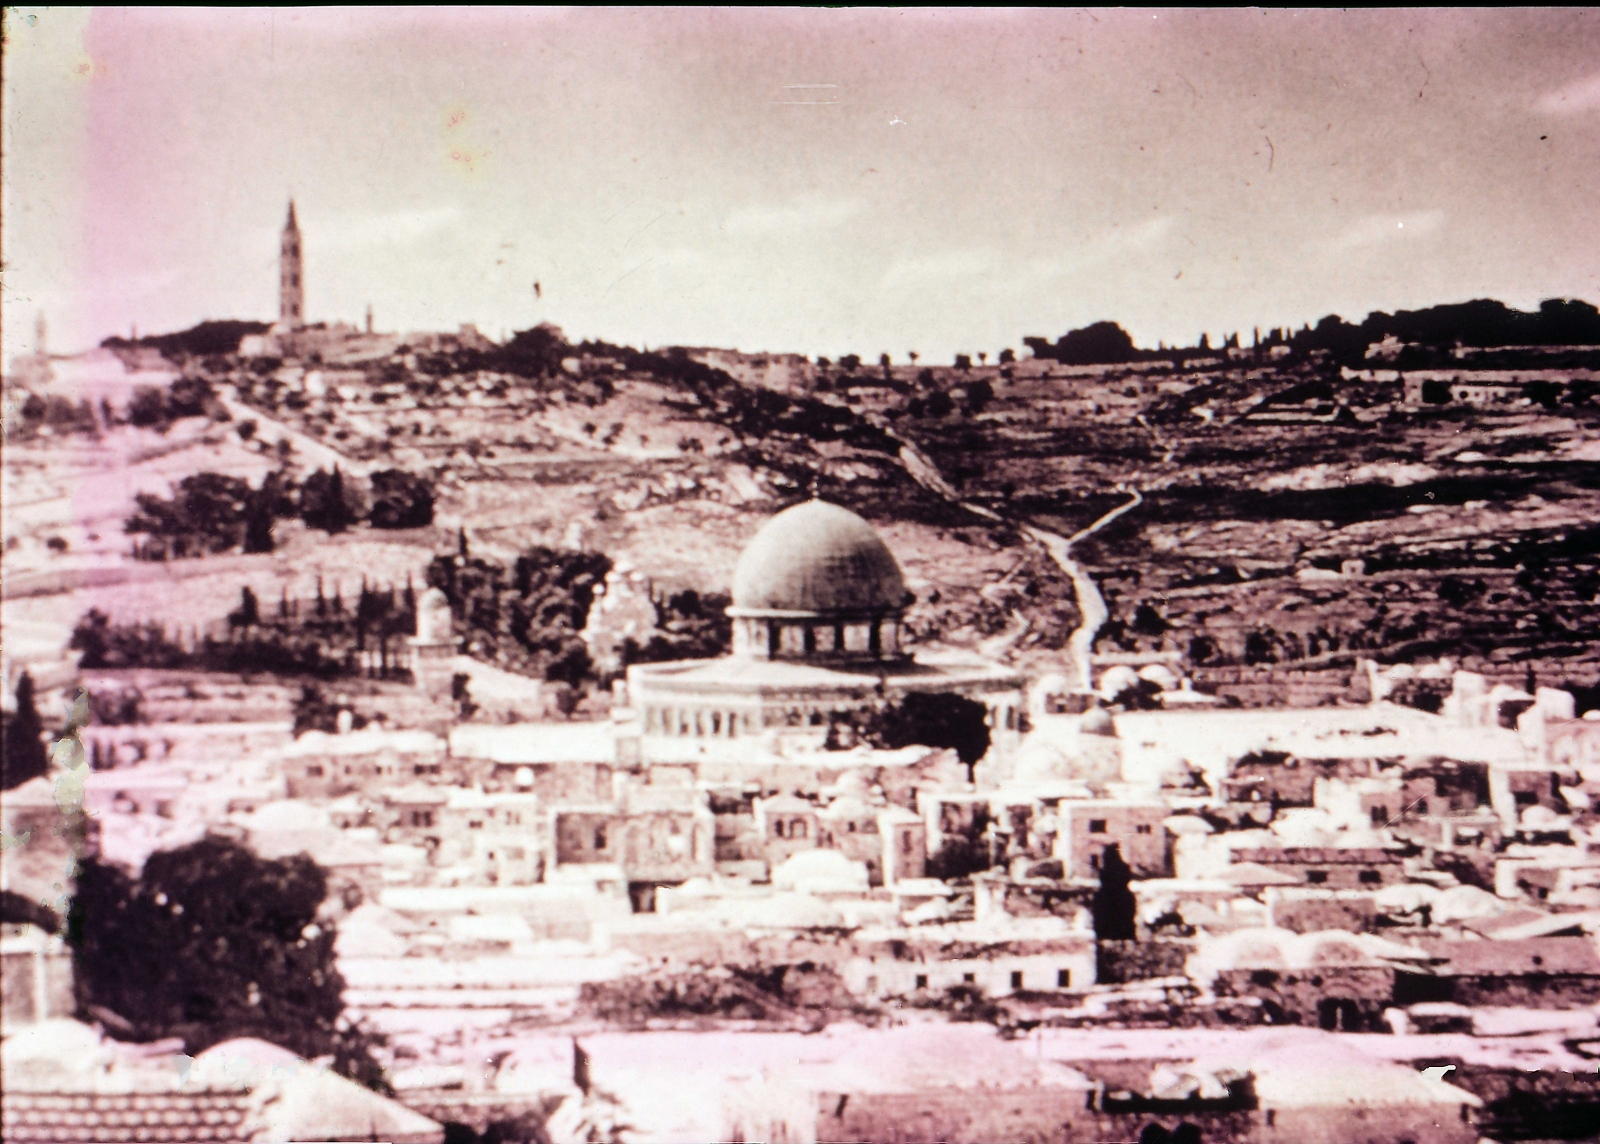 Mount of Olives from Temple Area